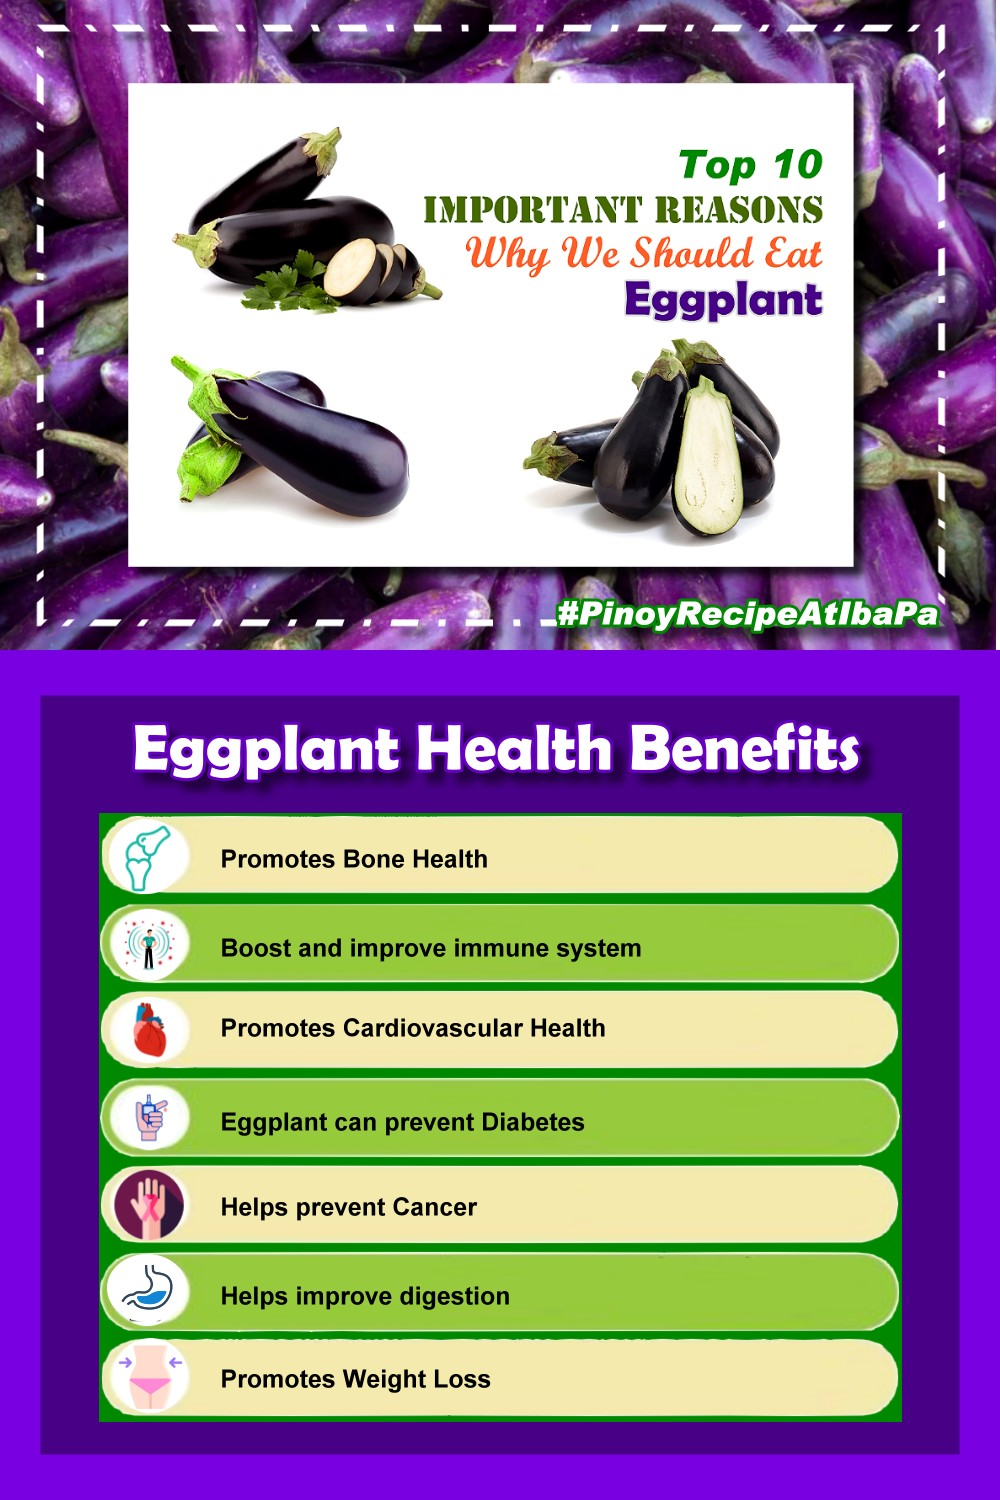 Top 10 Health Benefits OF Eggplant